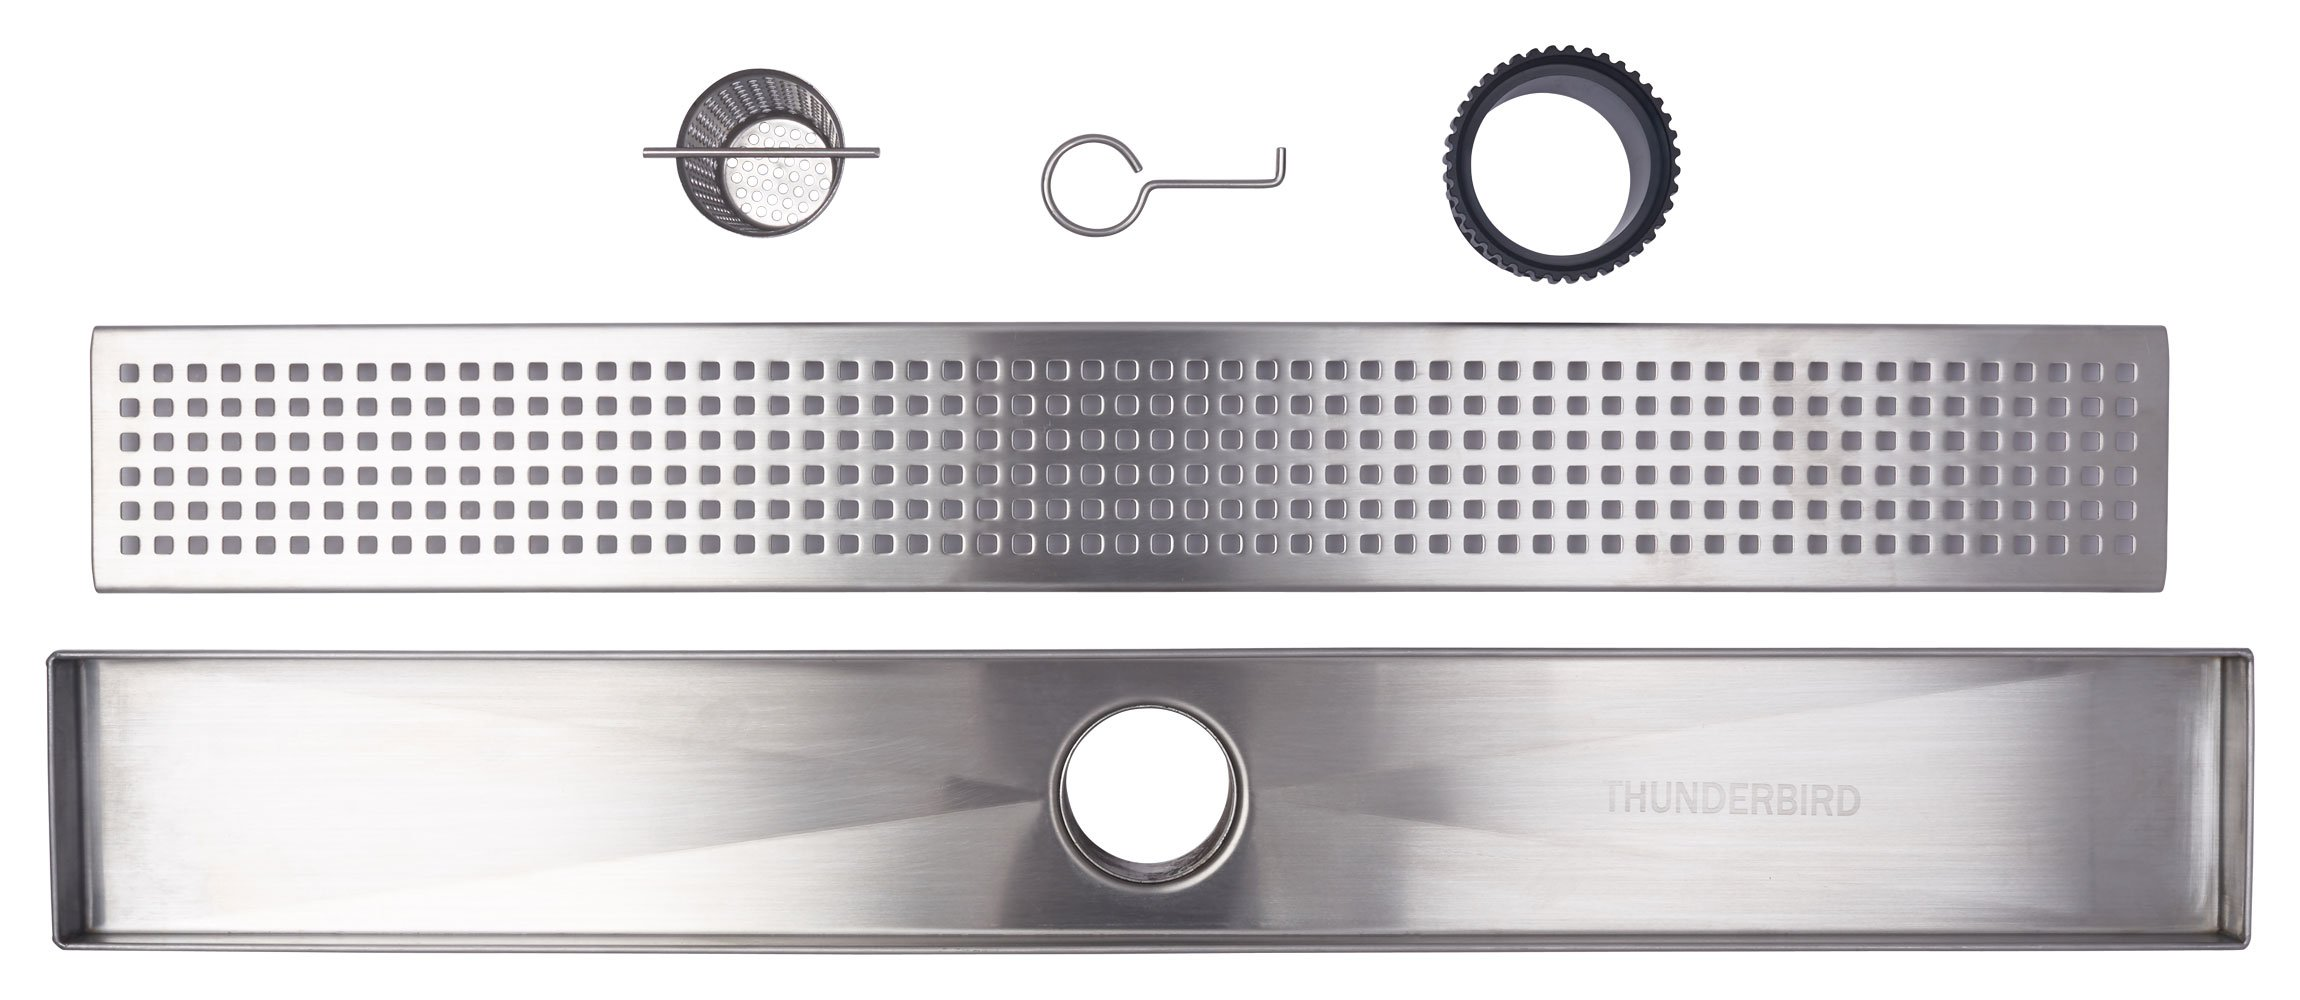 Linear Shower Drain Grate, Square Hole Pattern, 36-inch, 304-Grade Stainless Steel (18 Gauge), ICC-ES Certified (UPC)